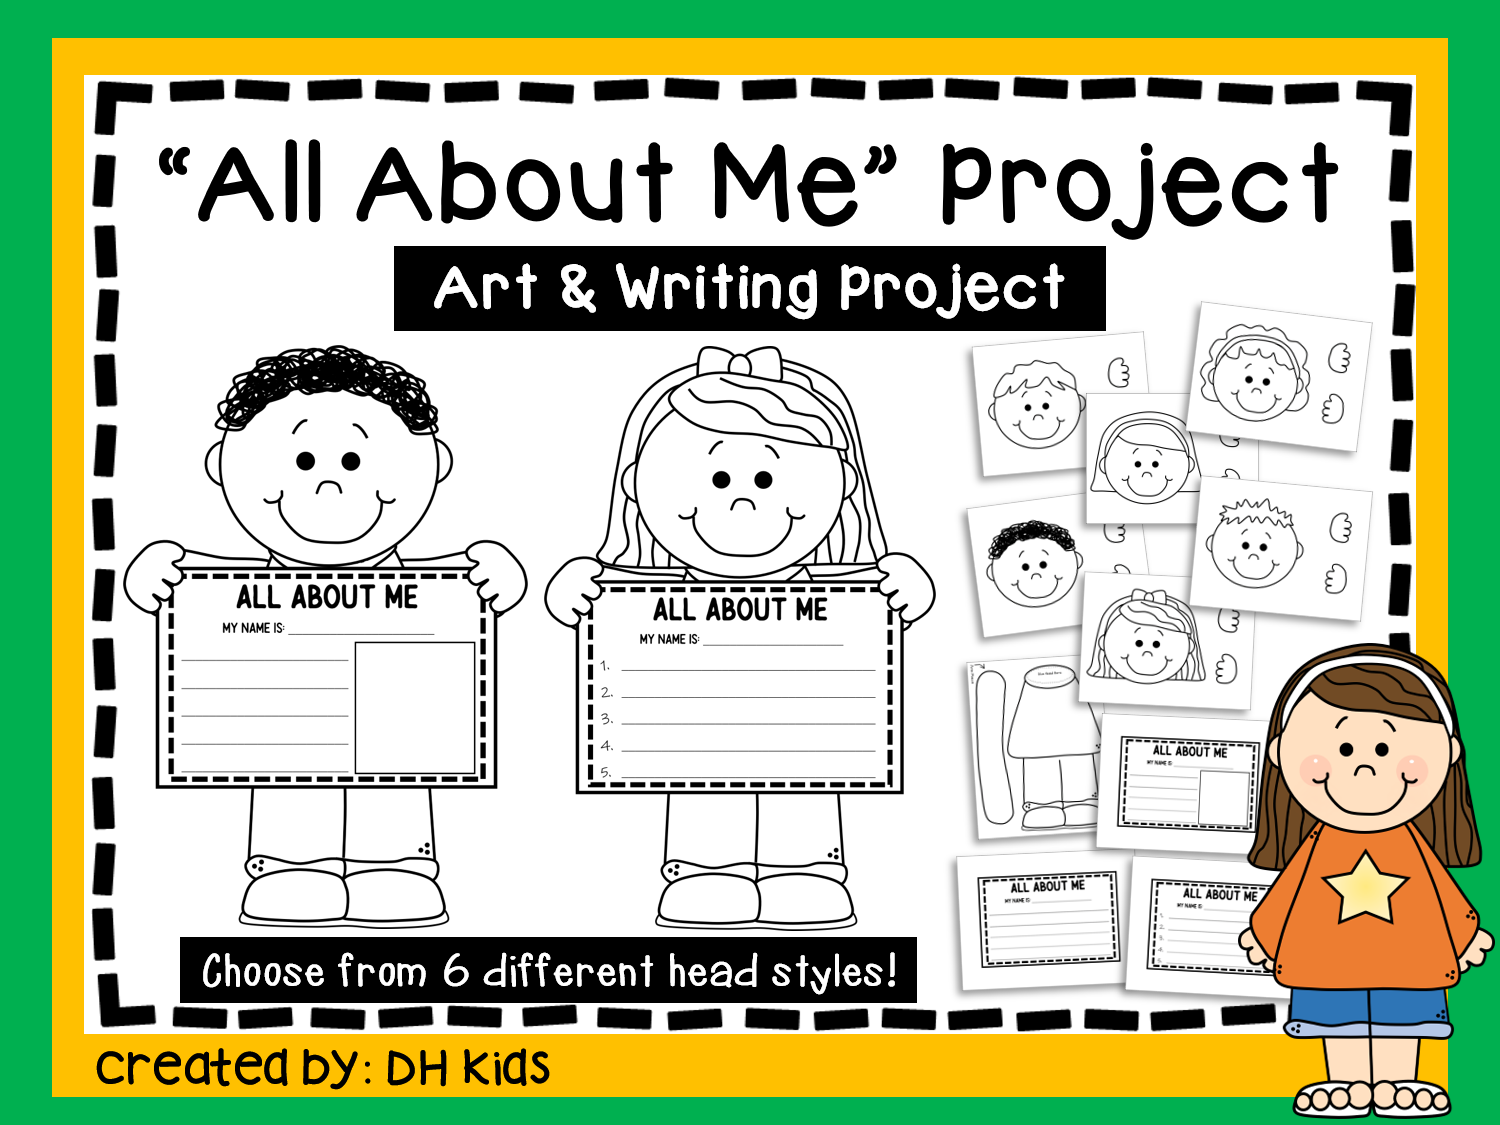 All About Me Printable Art Project